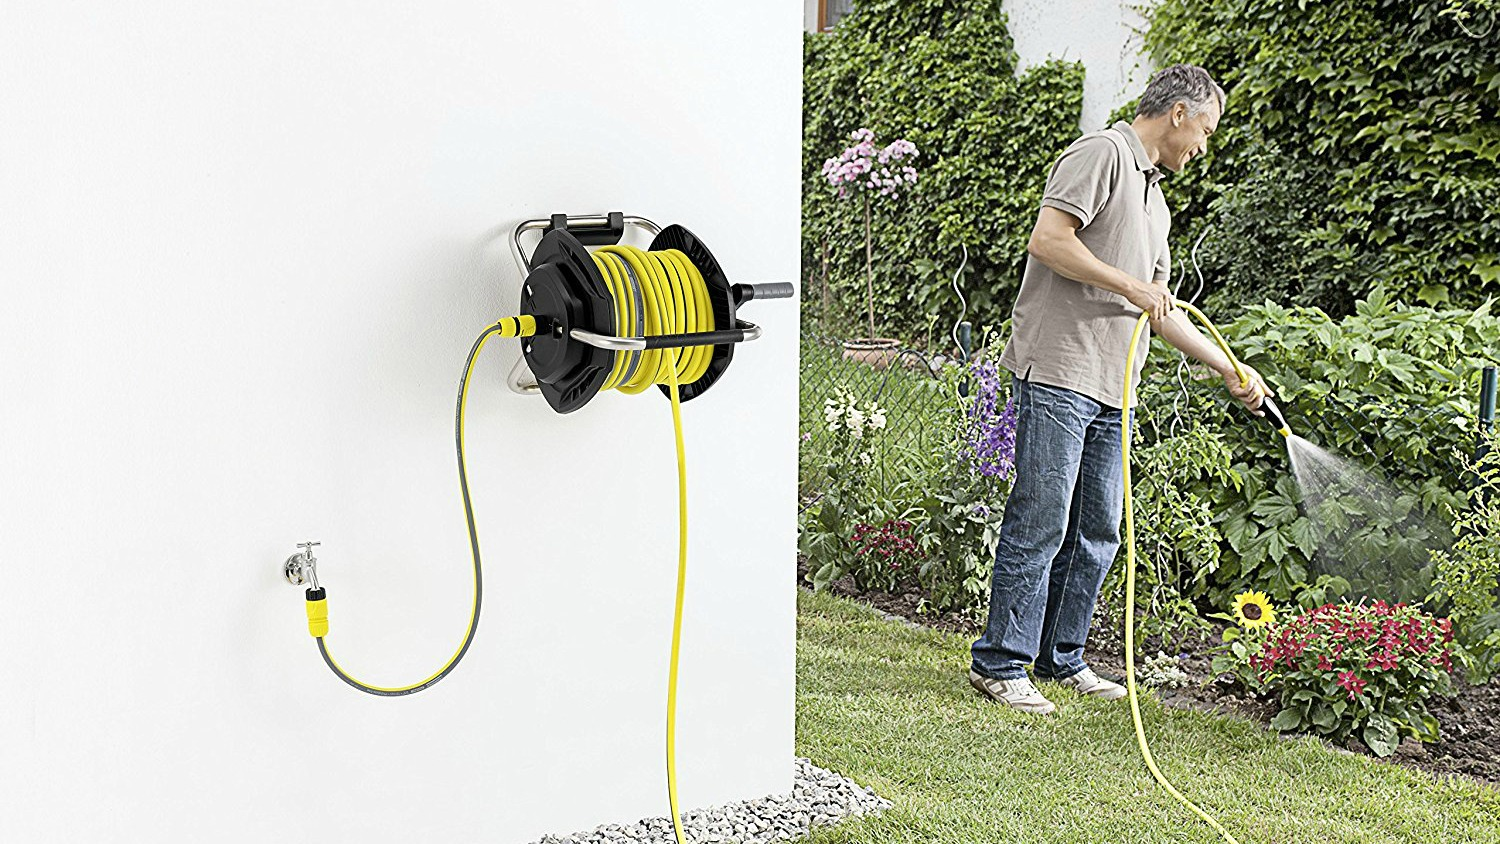 best garden hose the best garden hoses to buy from 13 expert reviews - Best Garden Hose Reel